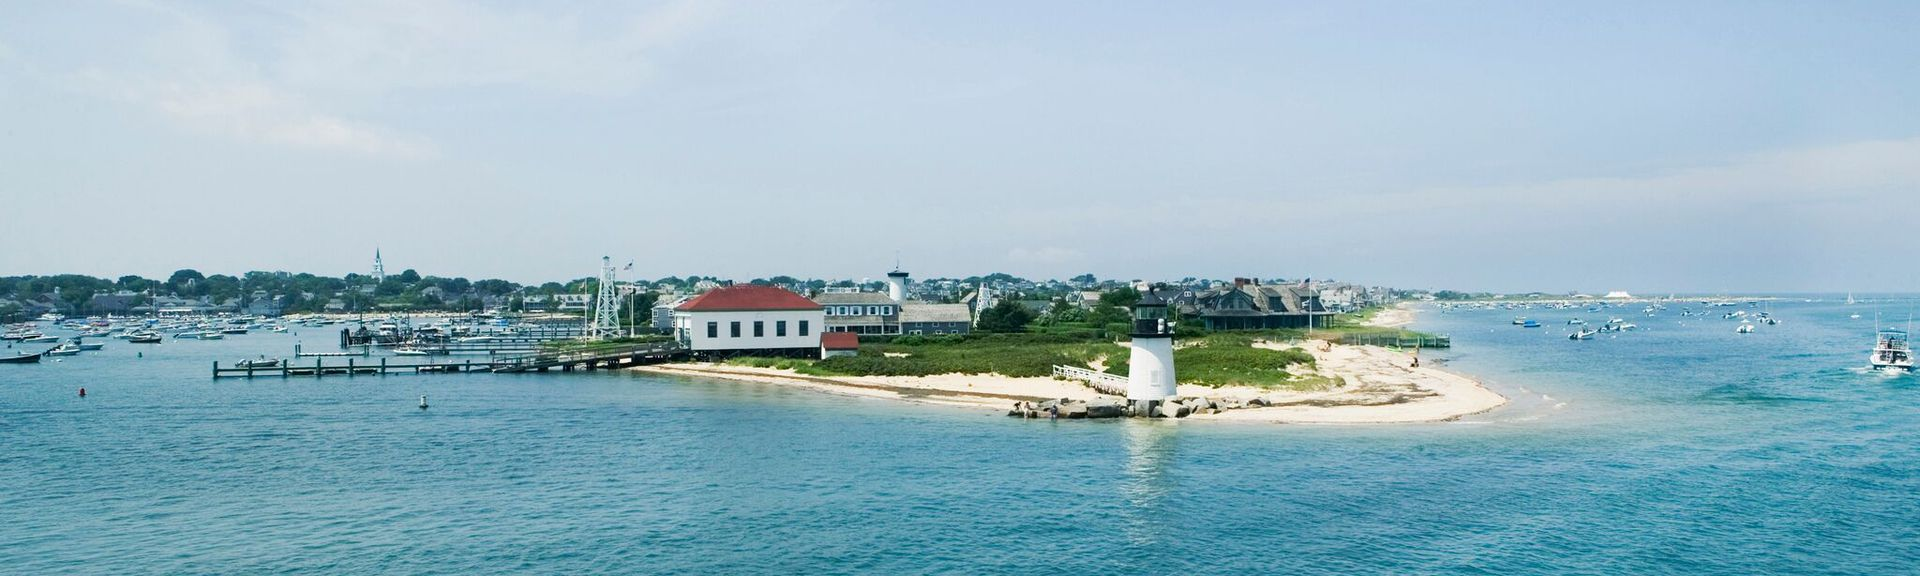 Nantucket, Massachusetts, United States of America